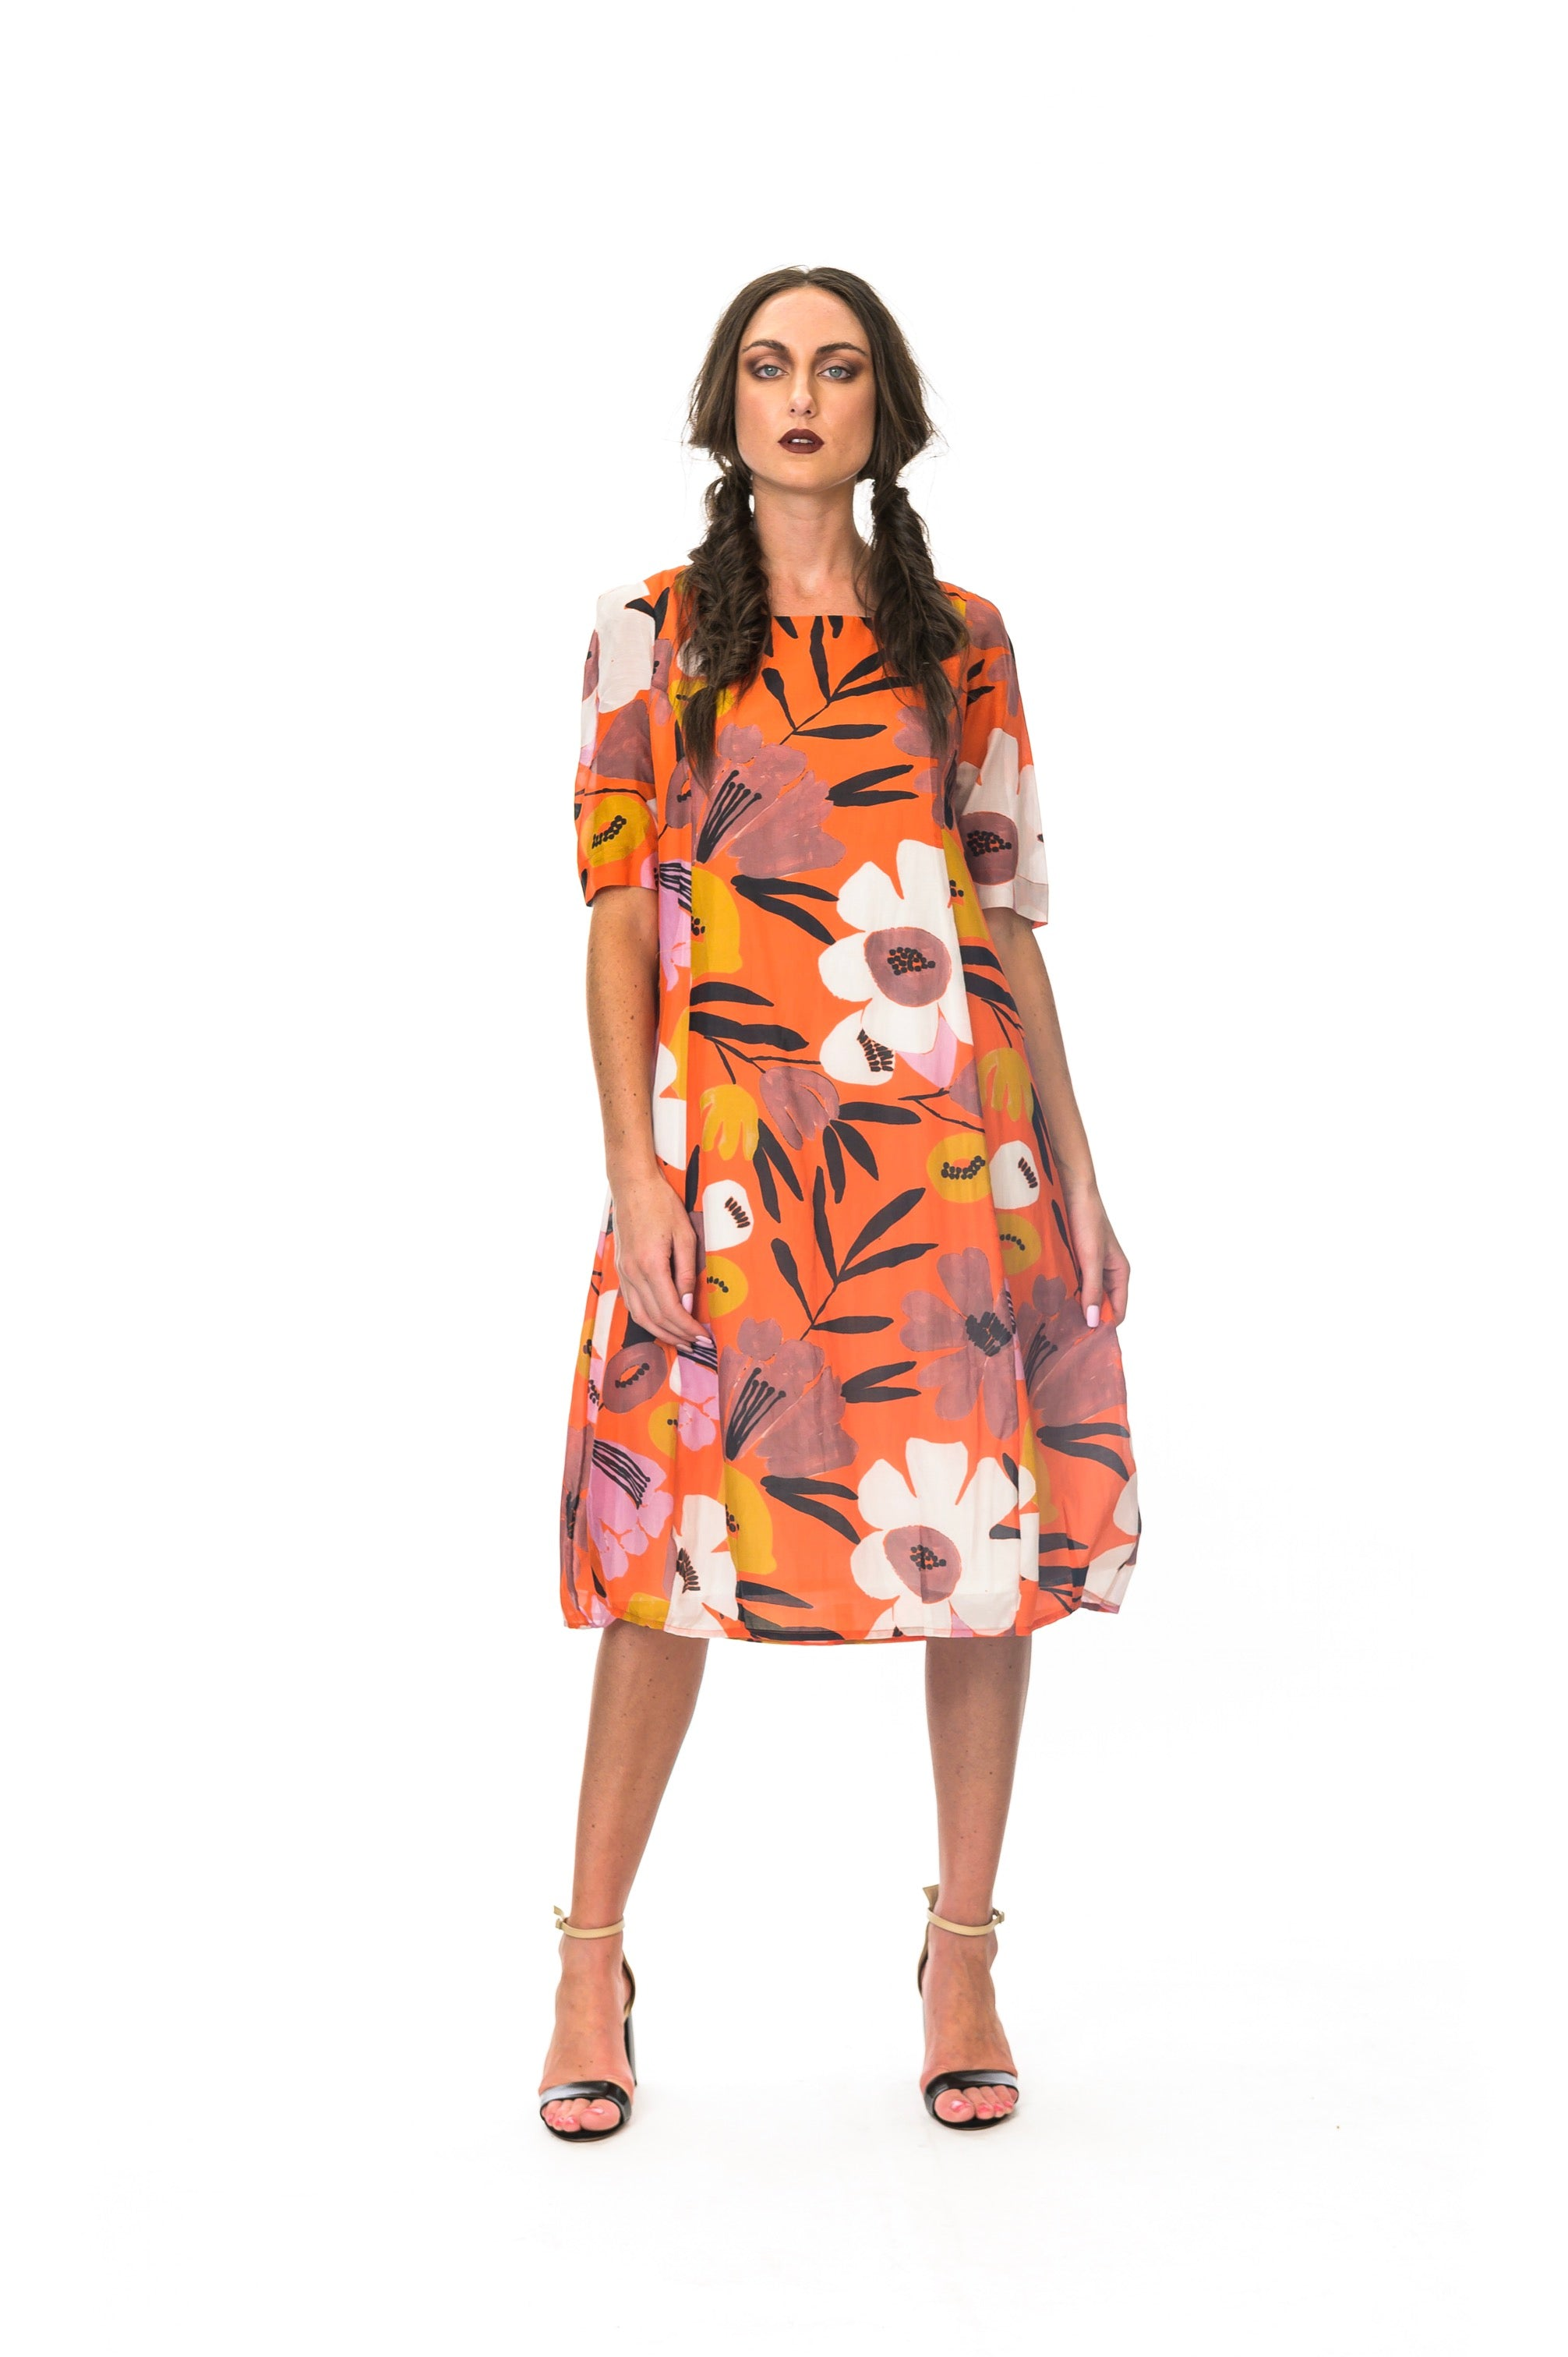 megan-salmon-flowerpop-giselle-bell-dress